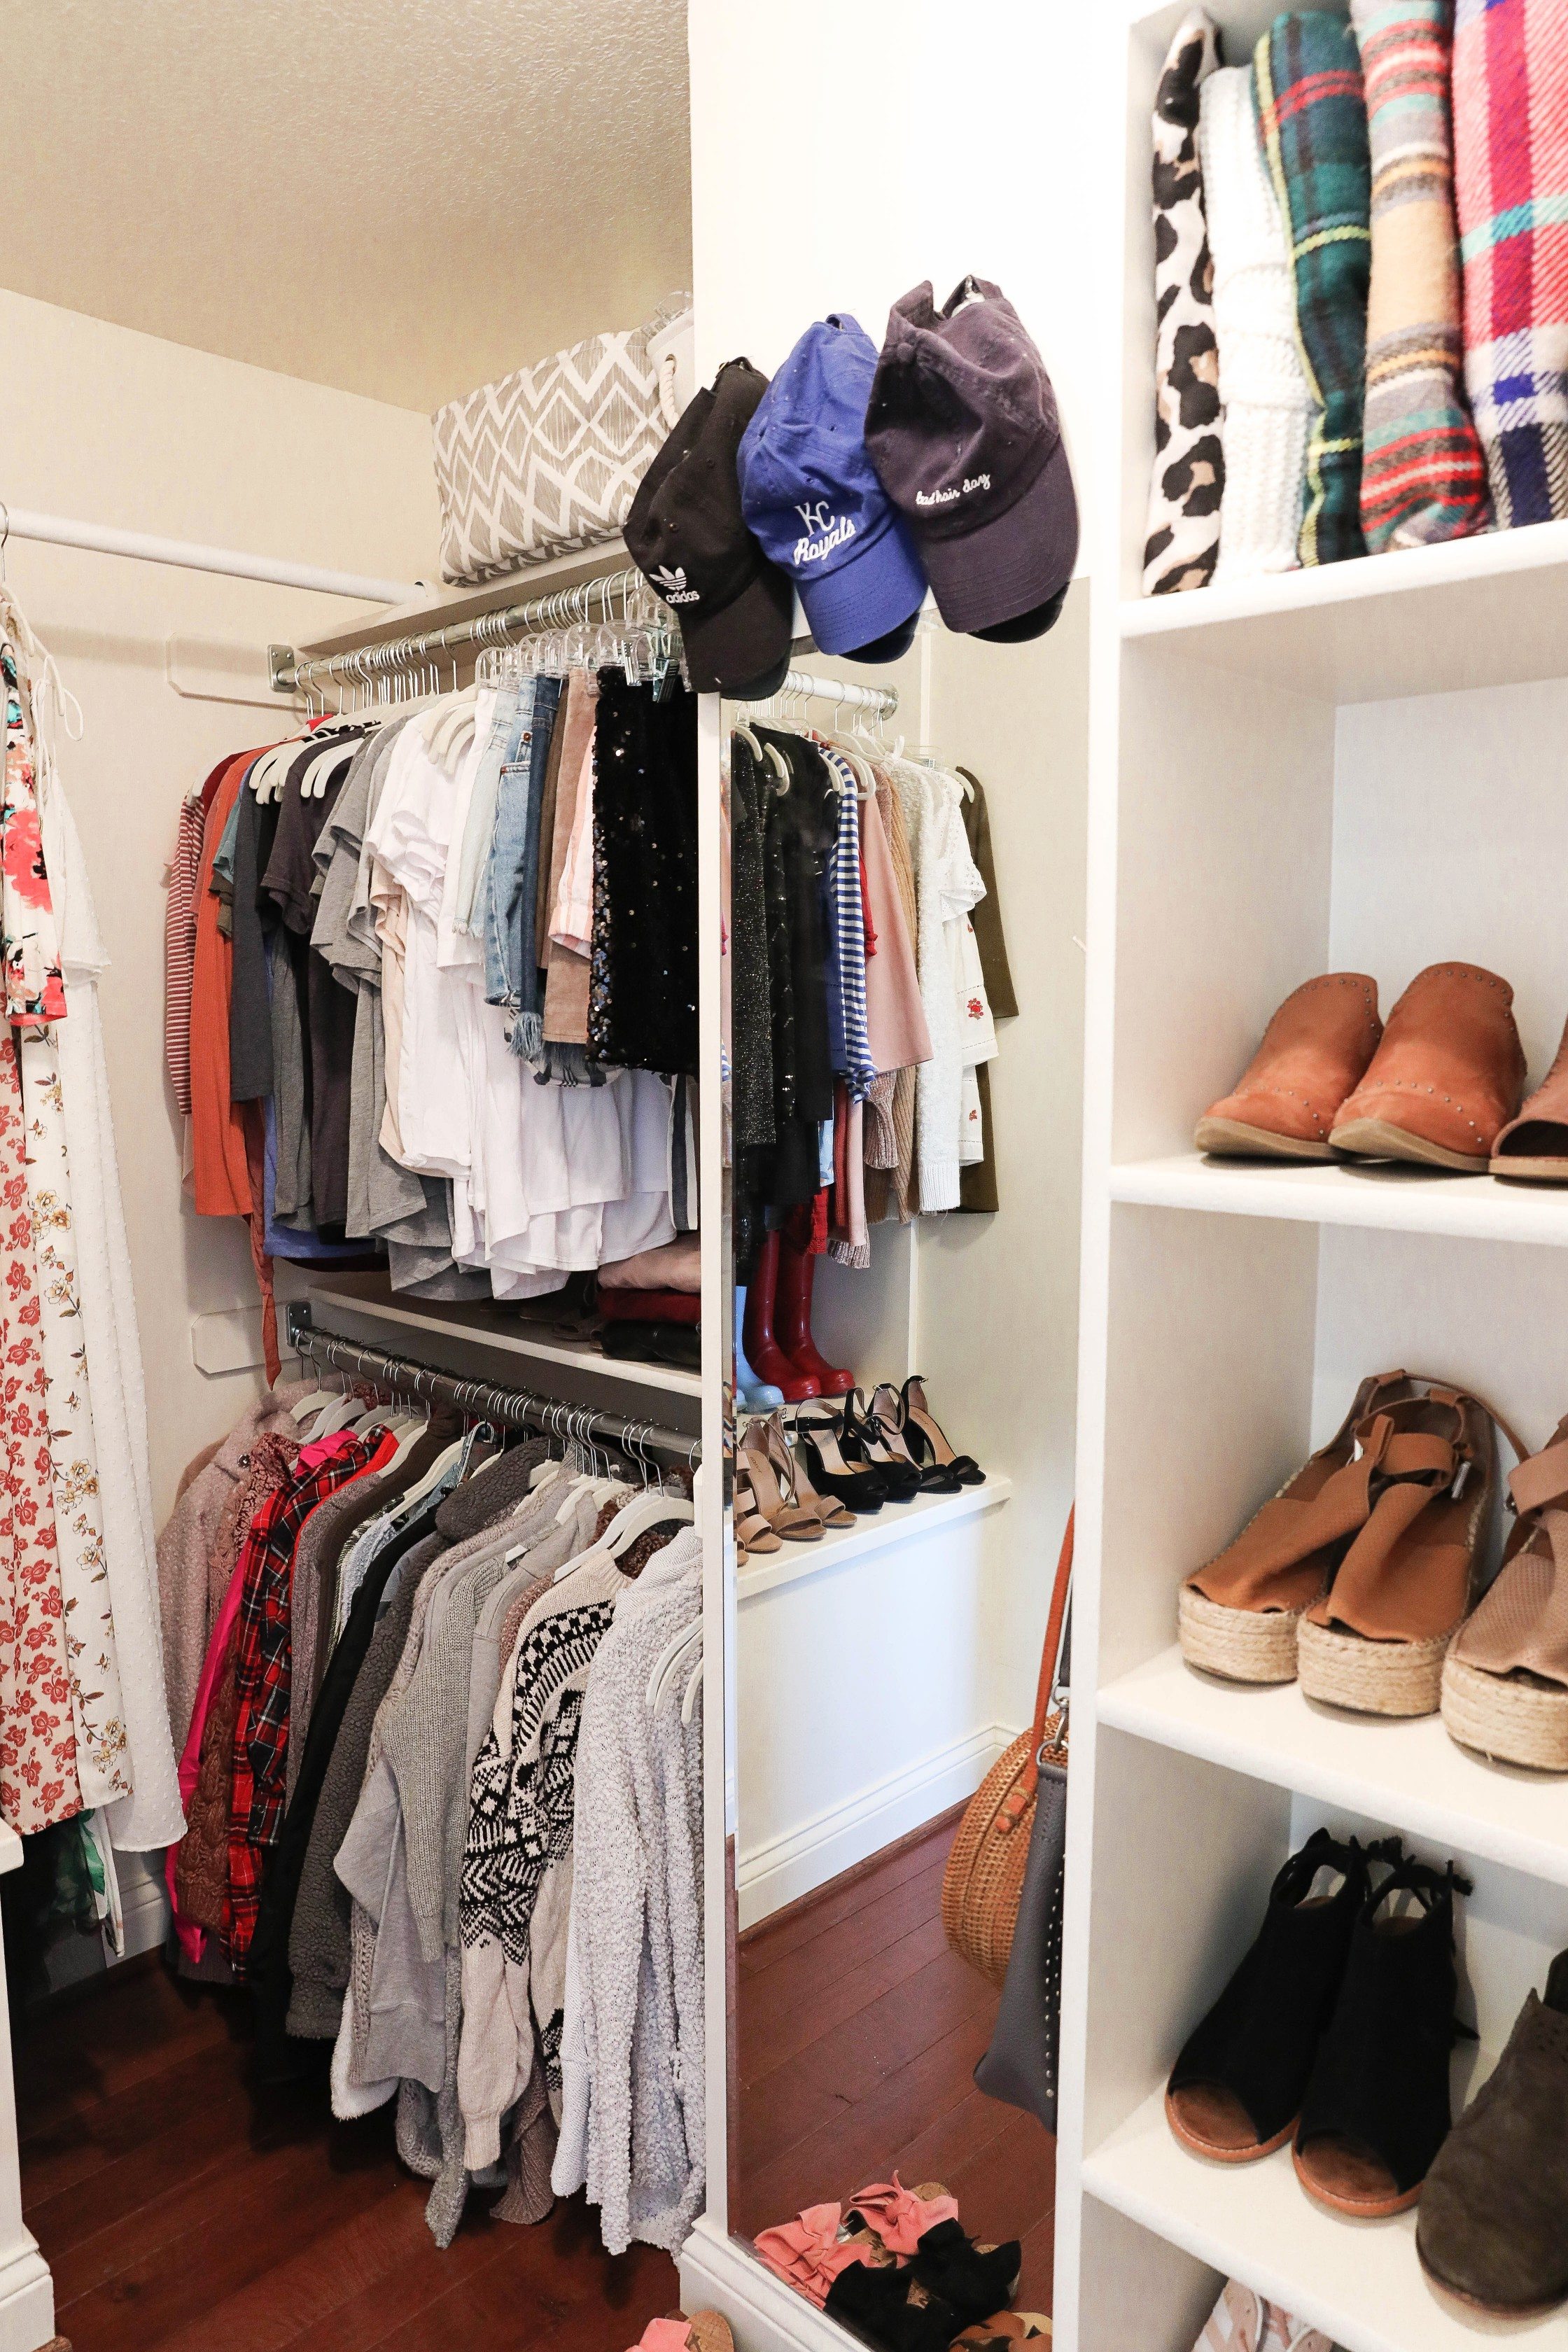 Room decluttering tips! Total closet clean out to live a minimal lifestyle. Spring cleaning means getting rid of clutter! Insane before and after photos of decluttering on lifestyle blog daily dose of charm by lauren lindmark